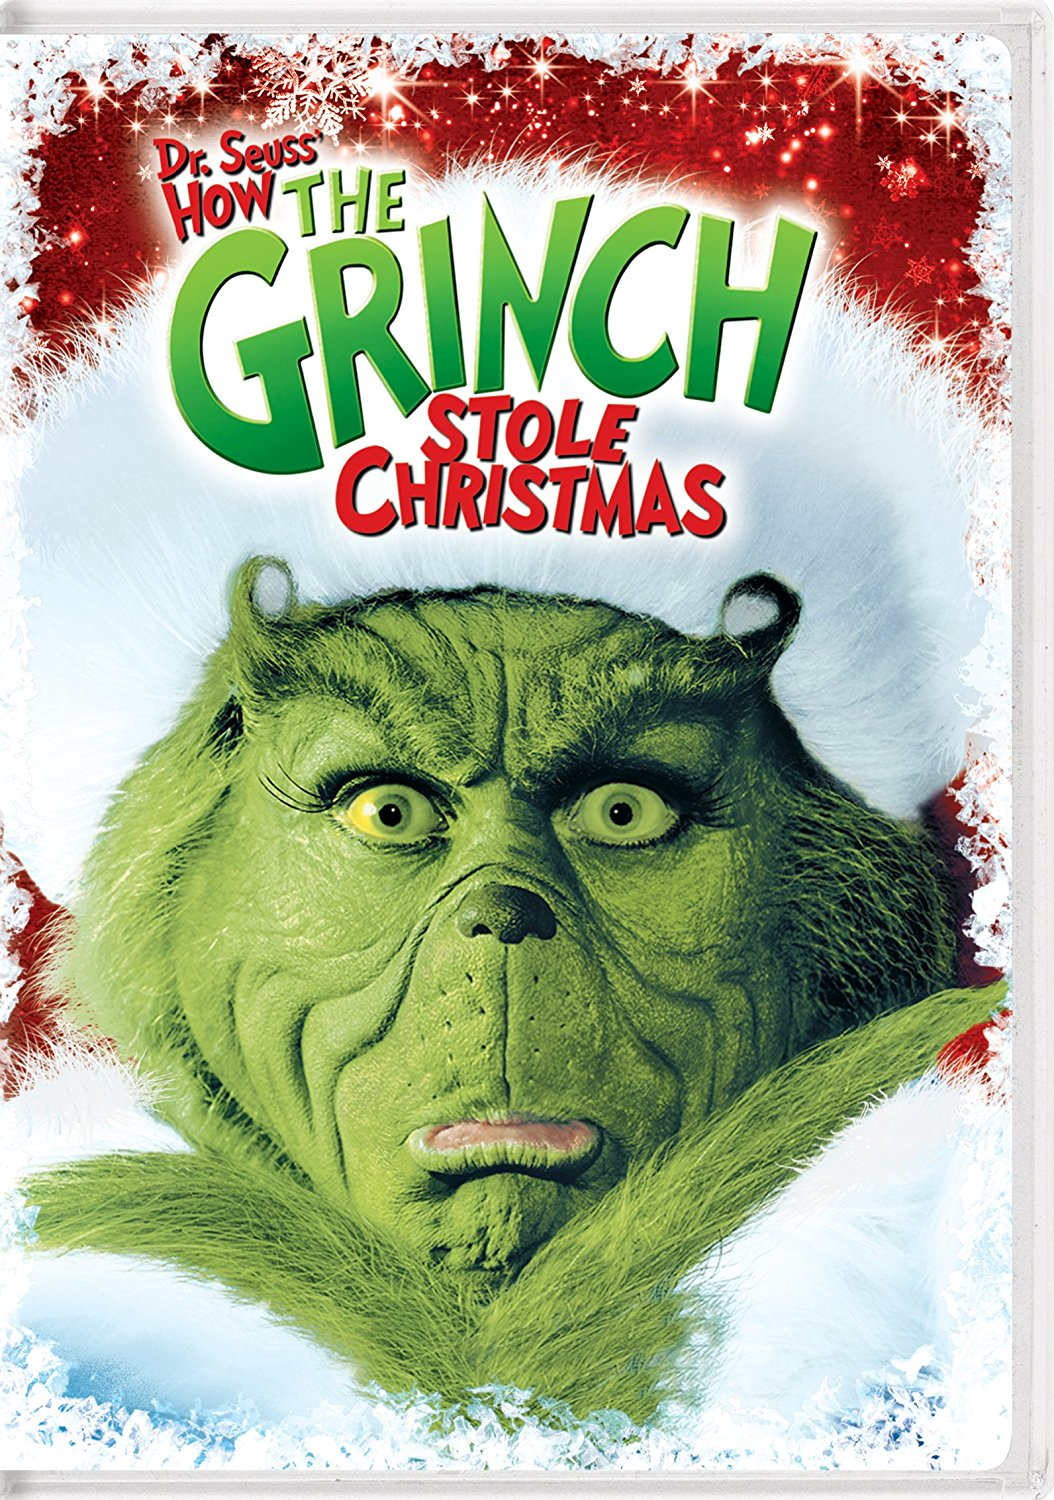 Dr Seuss How The Grinch Stole Christmas Dvd Only 6 50